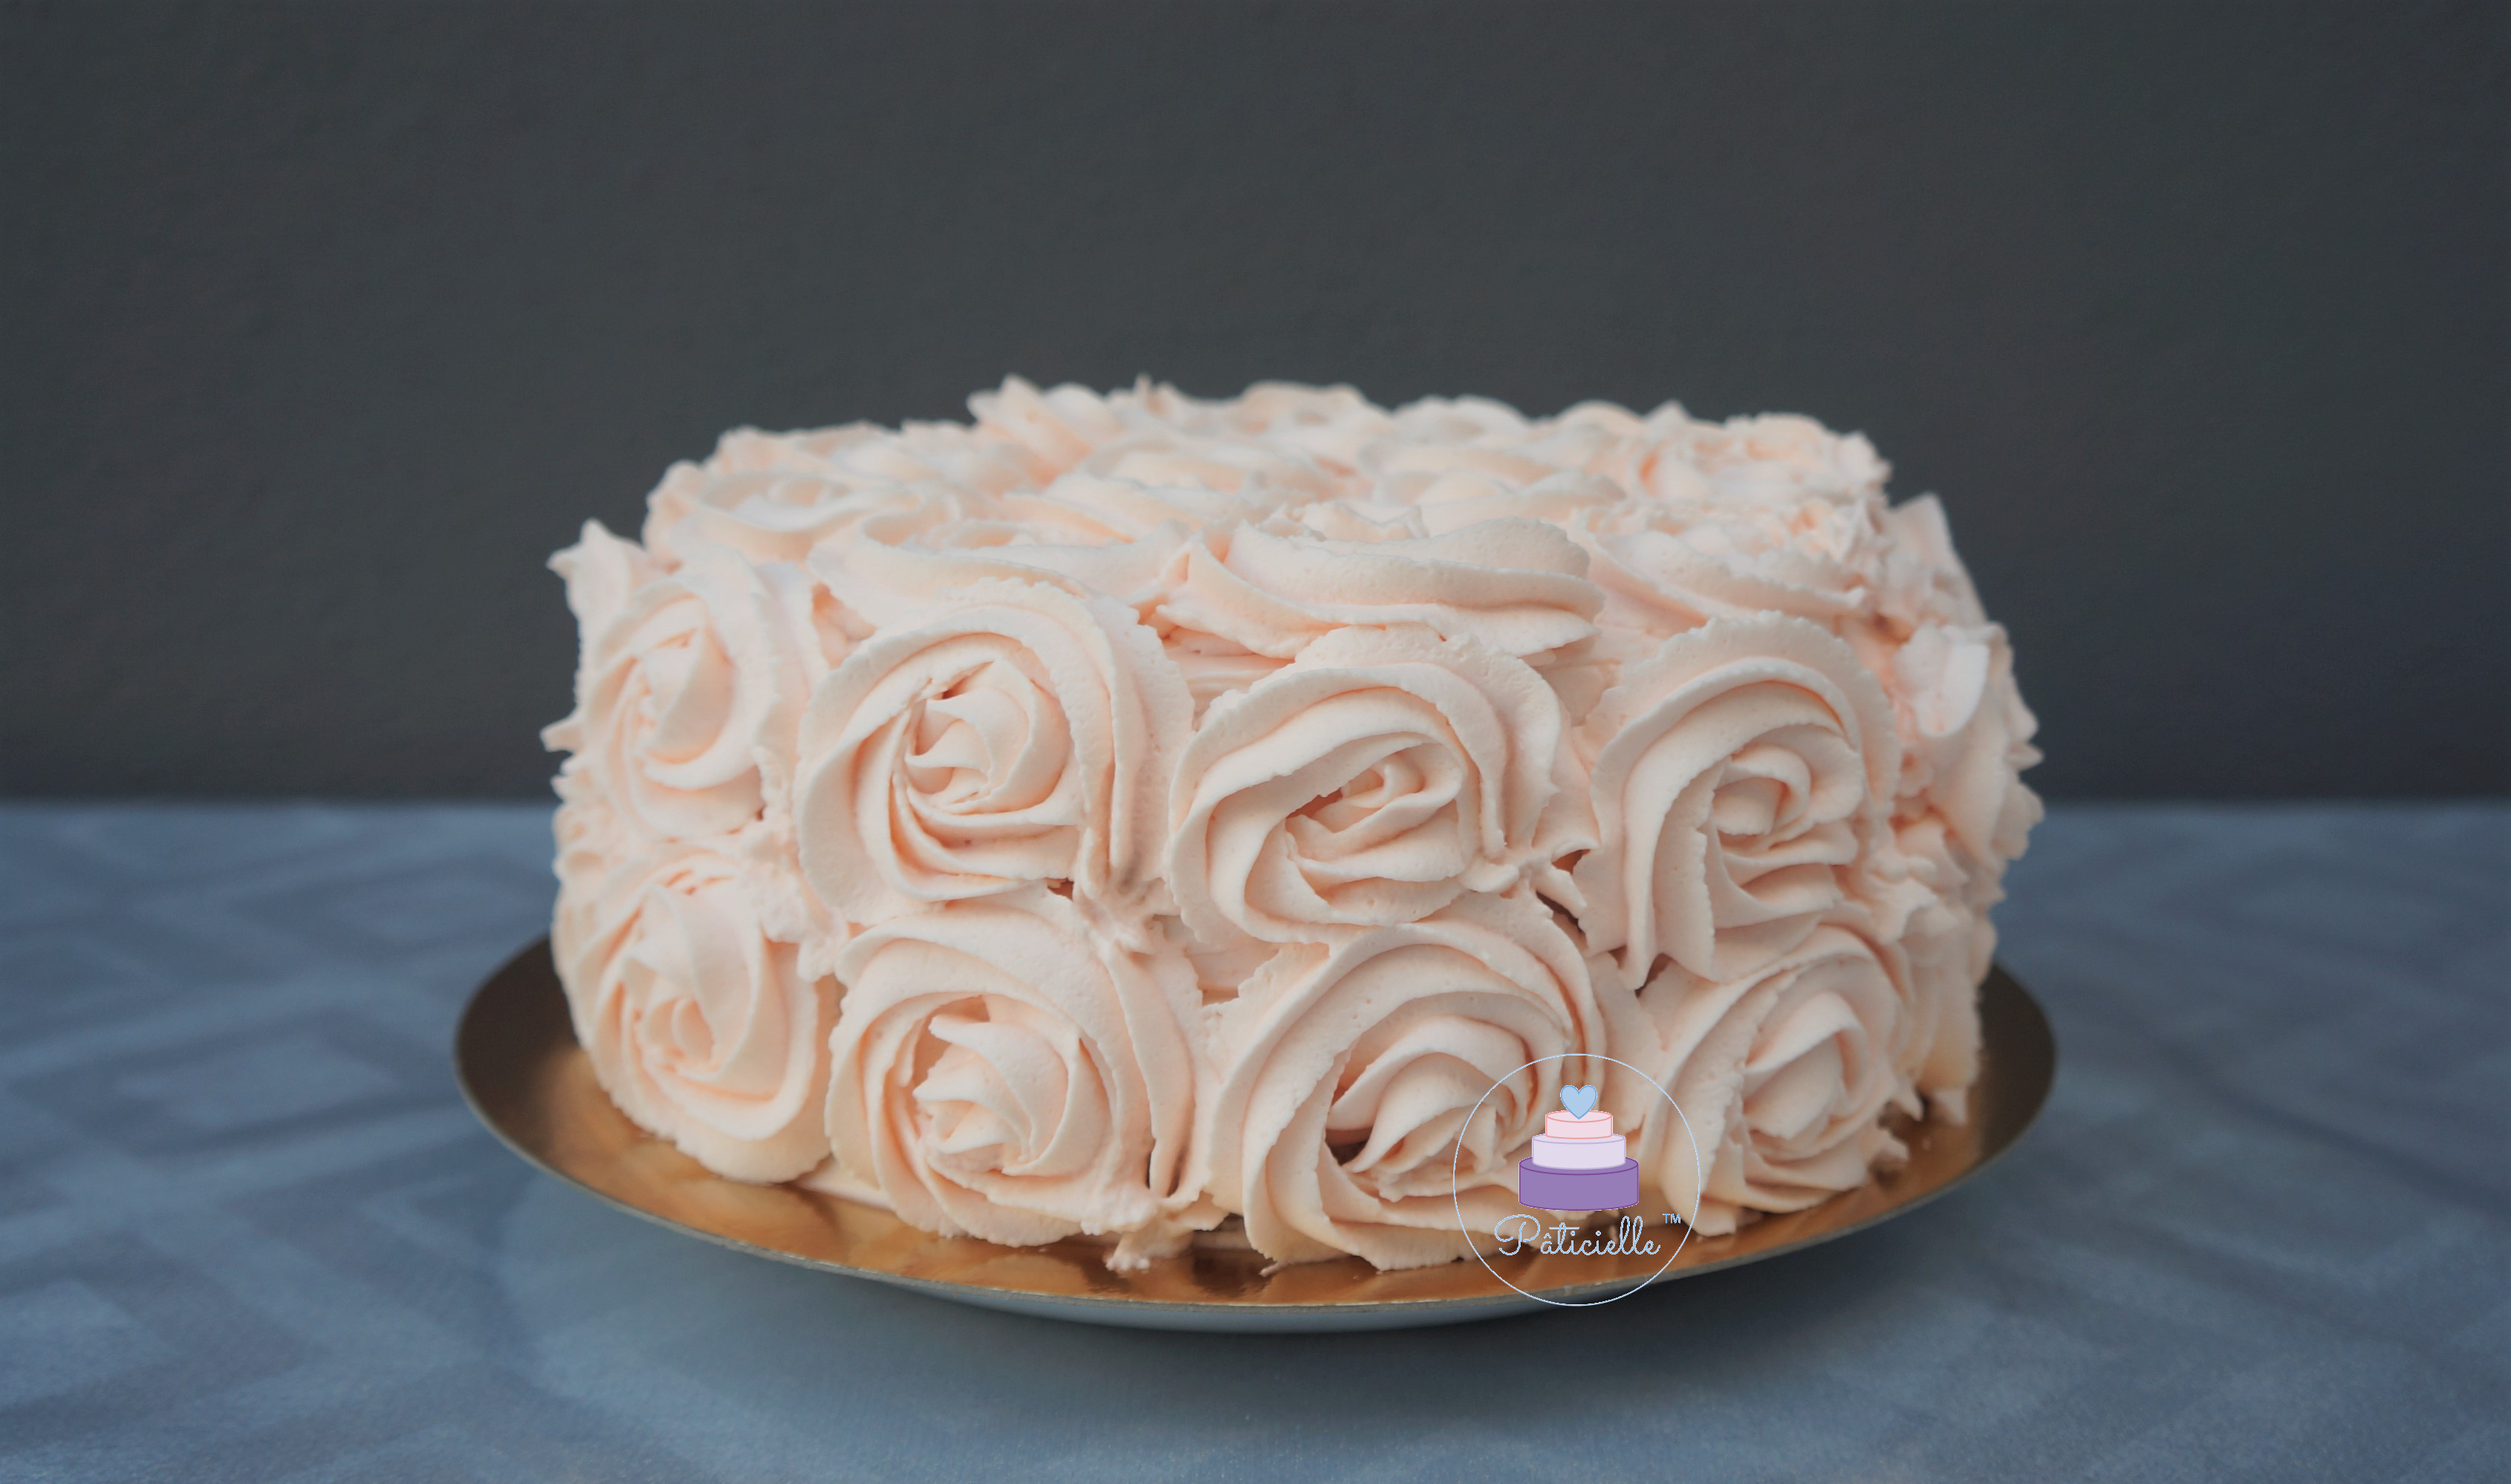 Rose cake lemon curd